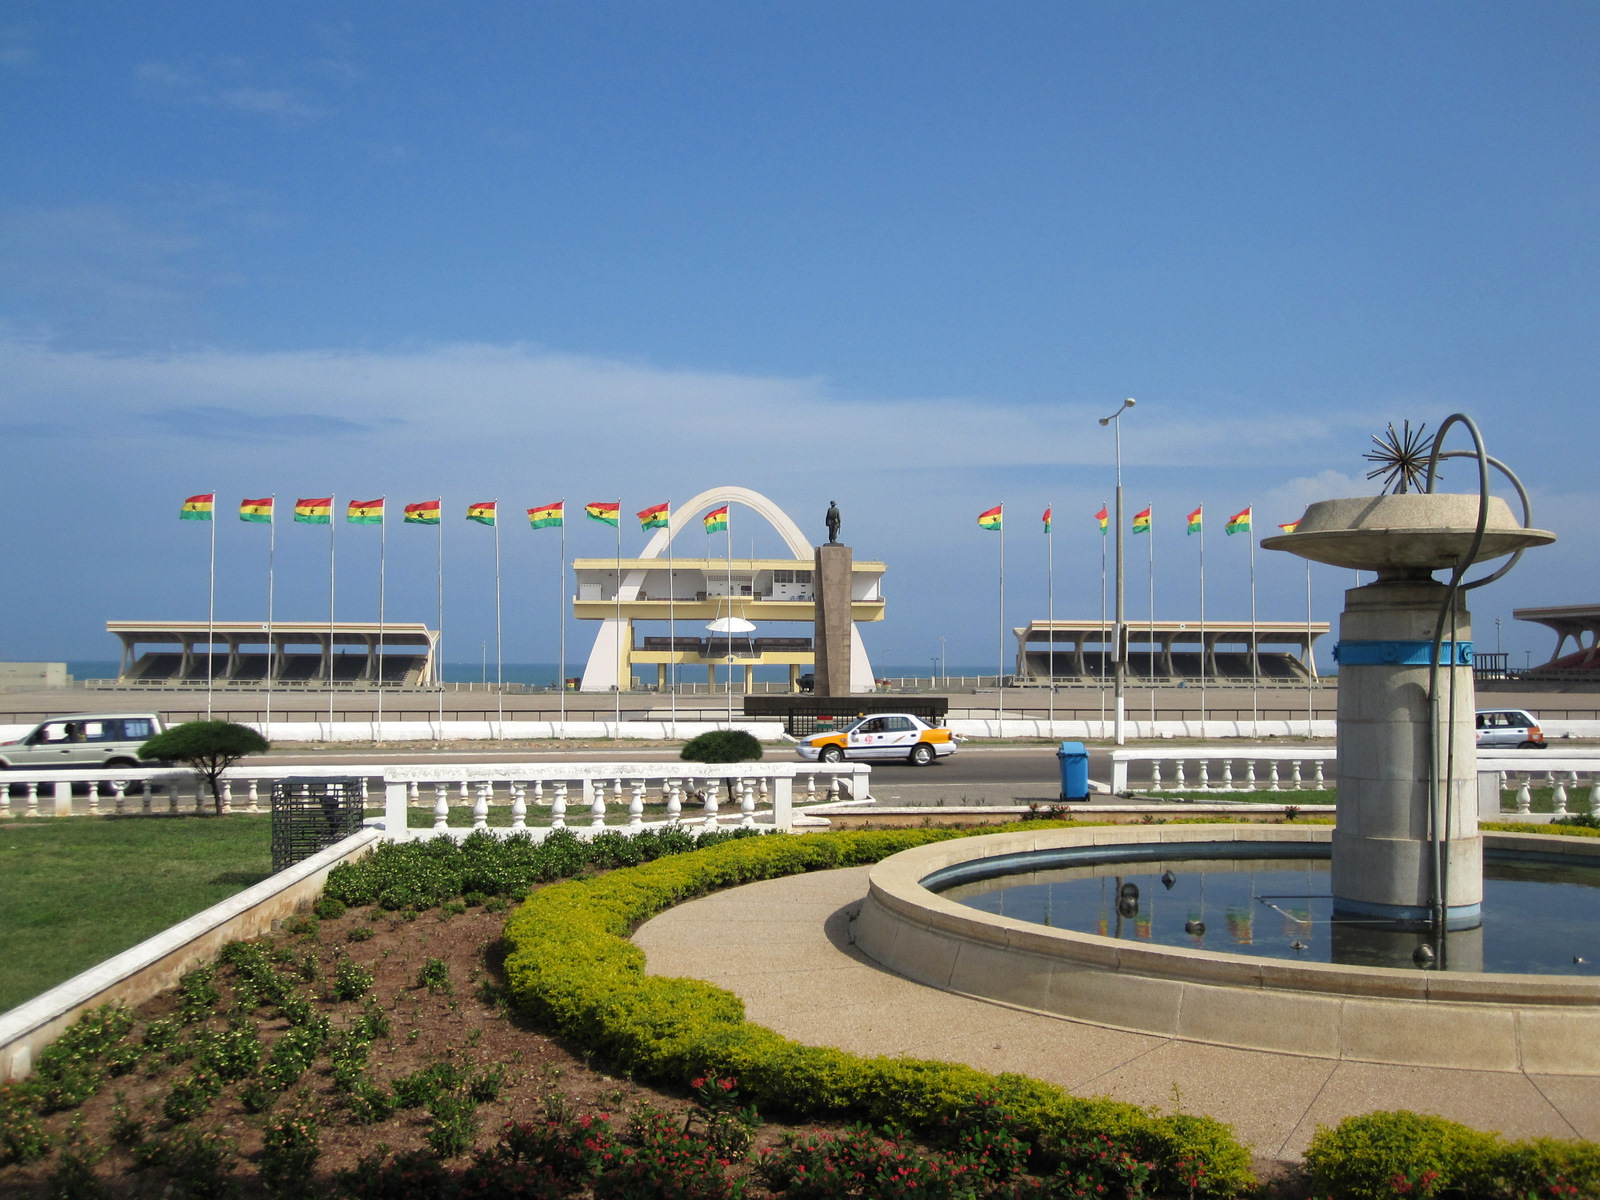 Independence_Square,_Accra,_Ghana.jpg